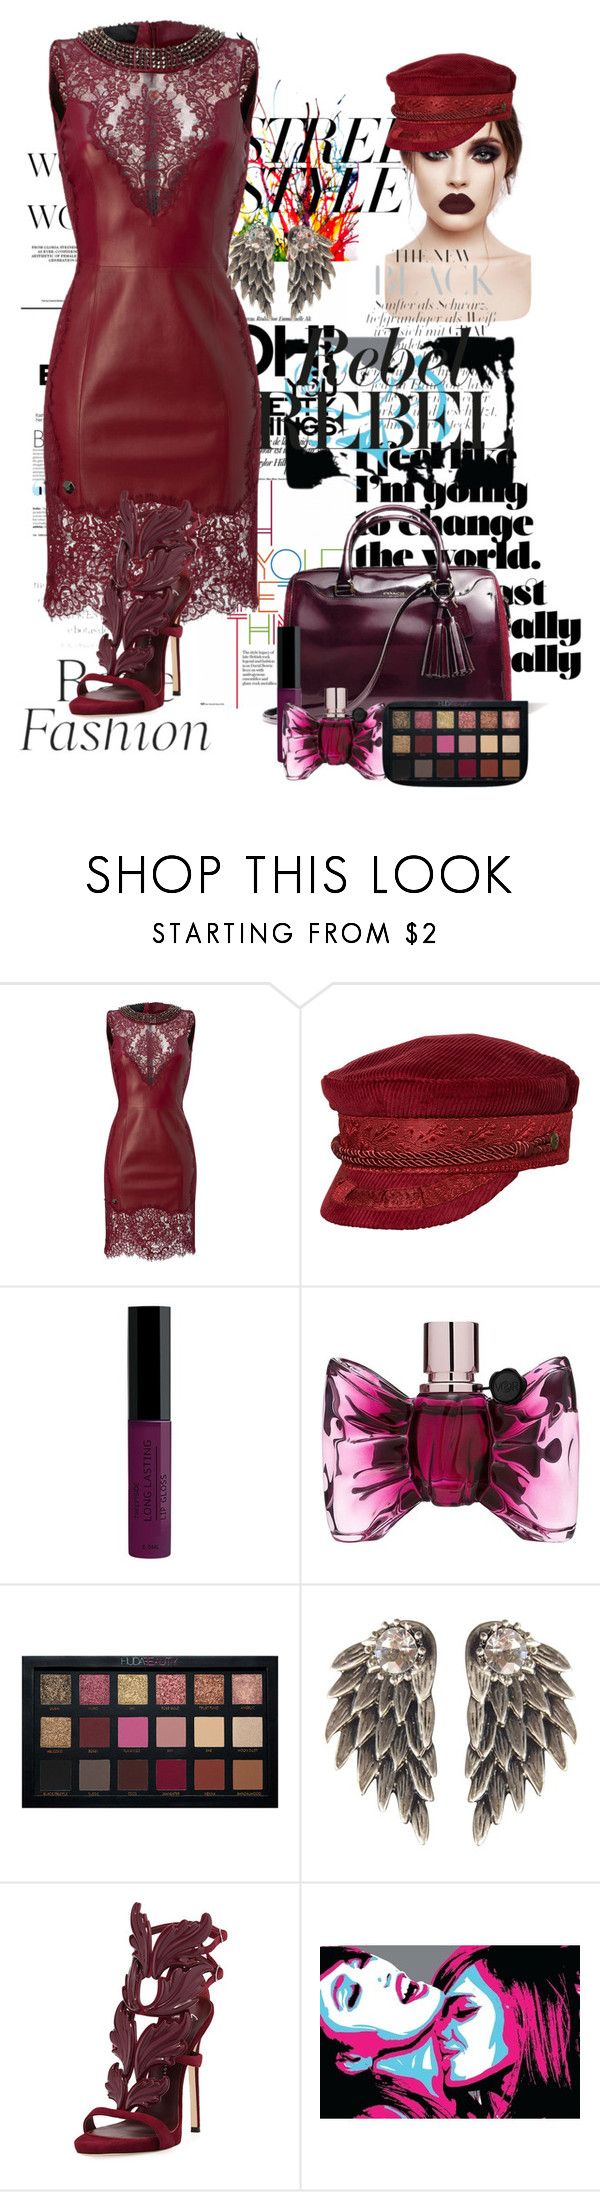 """""""Untitled #256"""" by tanya-gosnell-brewer ❤ liked on Polyvore featuring Brixton, Viktor & Rolf, Giuseppe Zanotti, Marmont Hill, Damaris, contestentry and nyfwstreetstyle"""